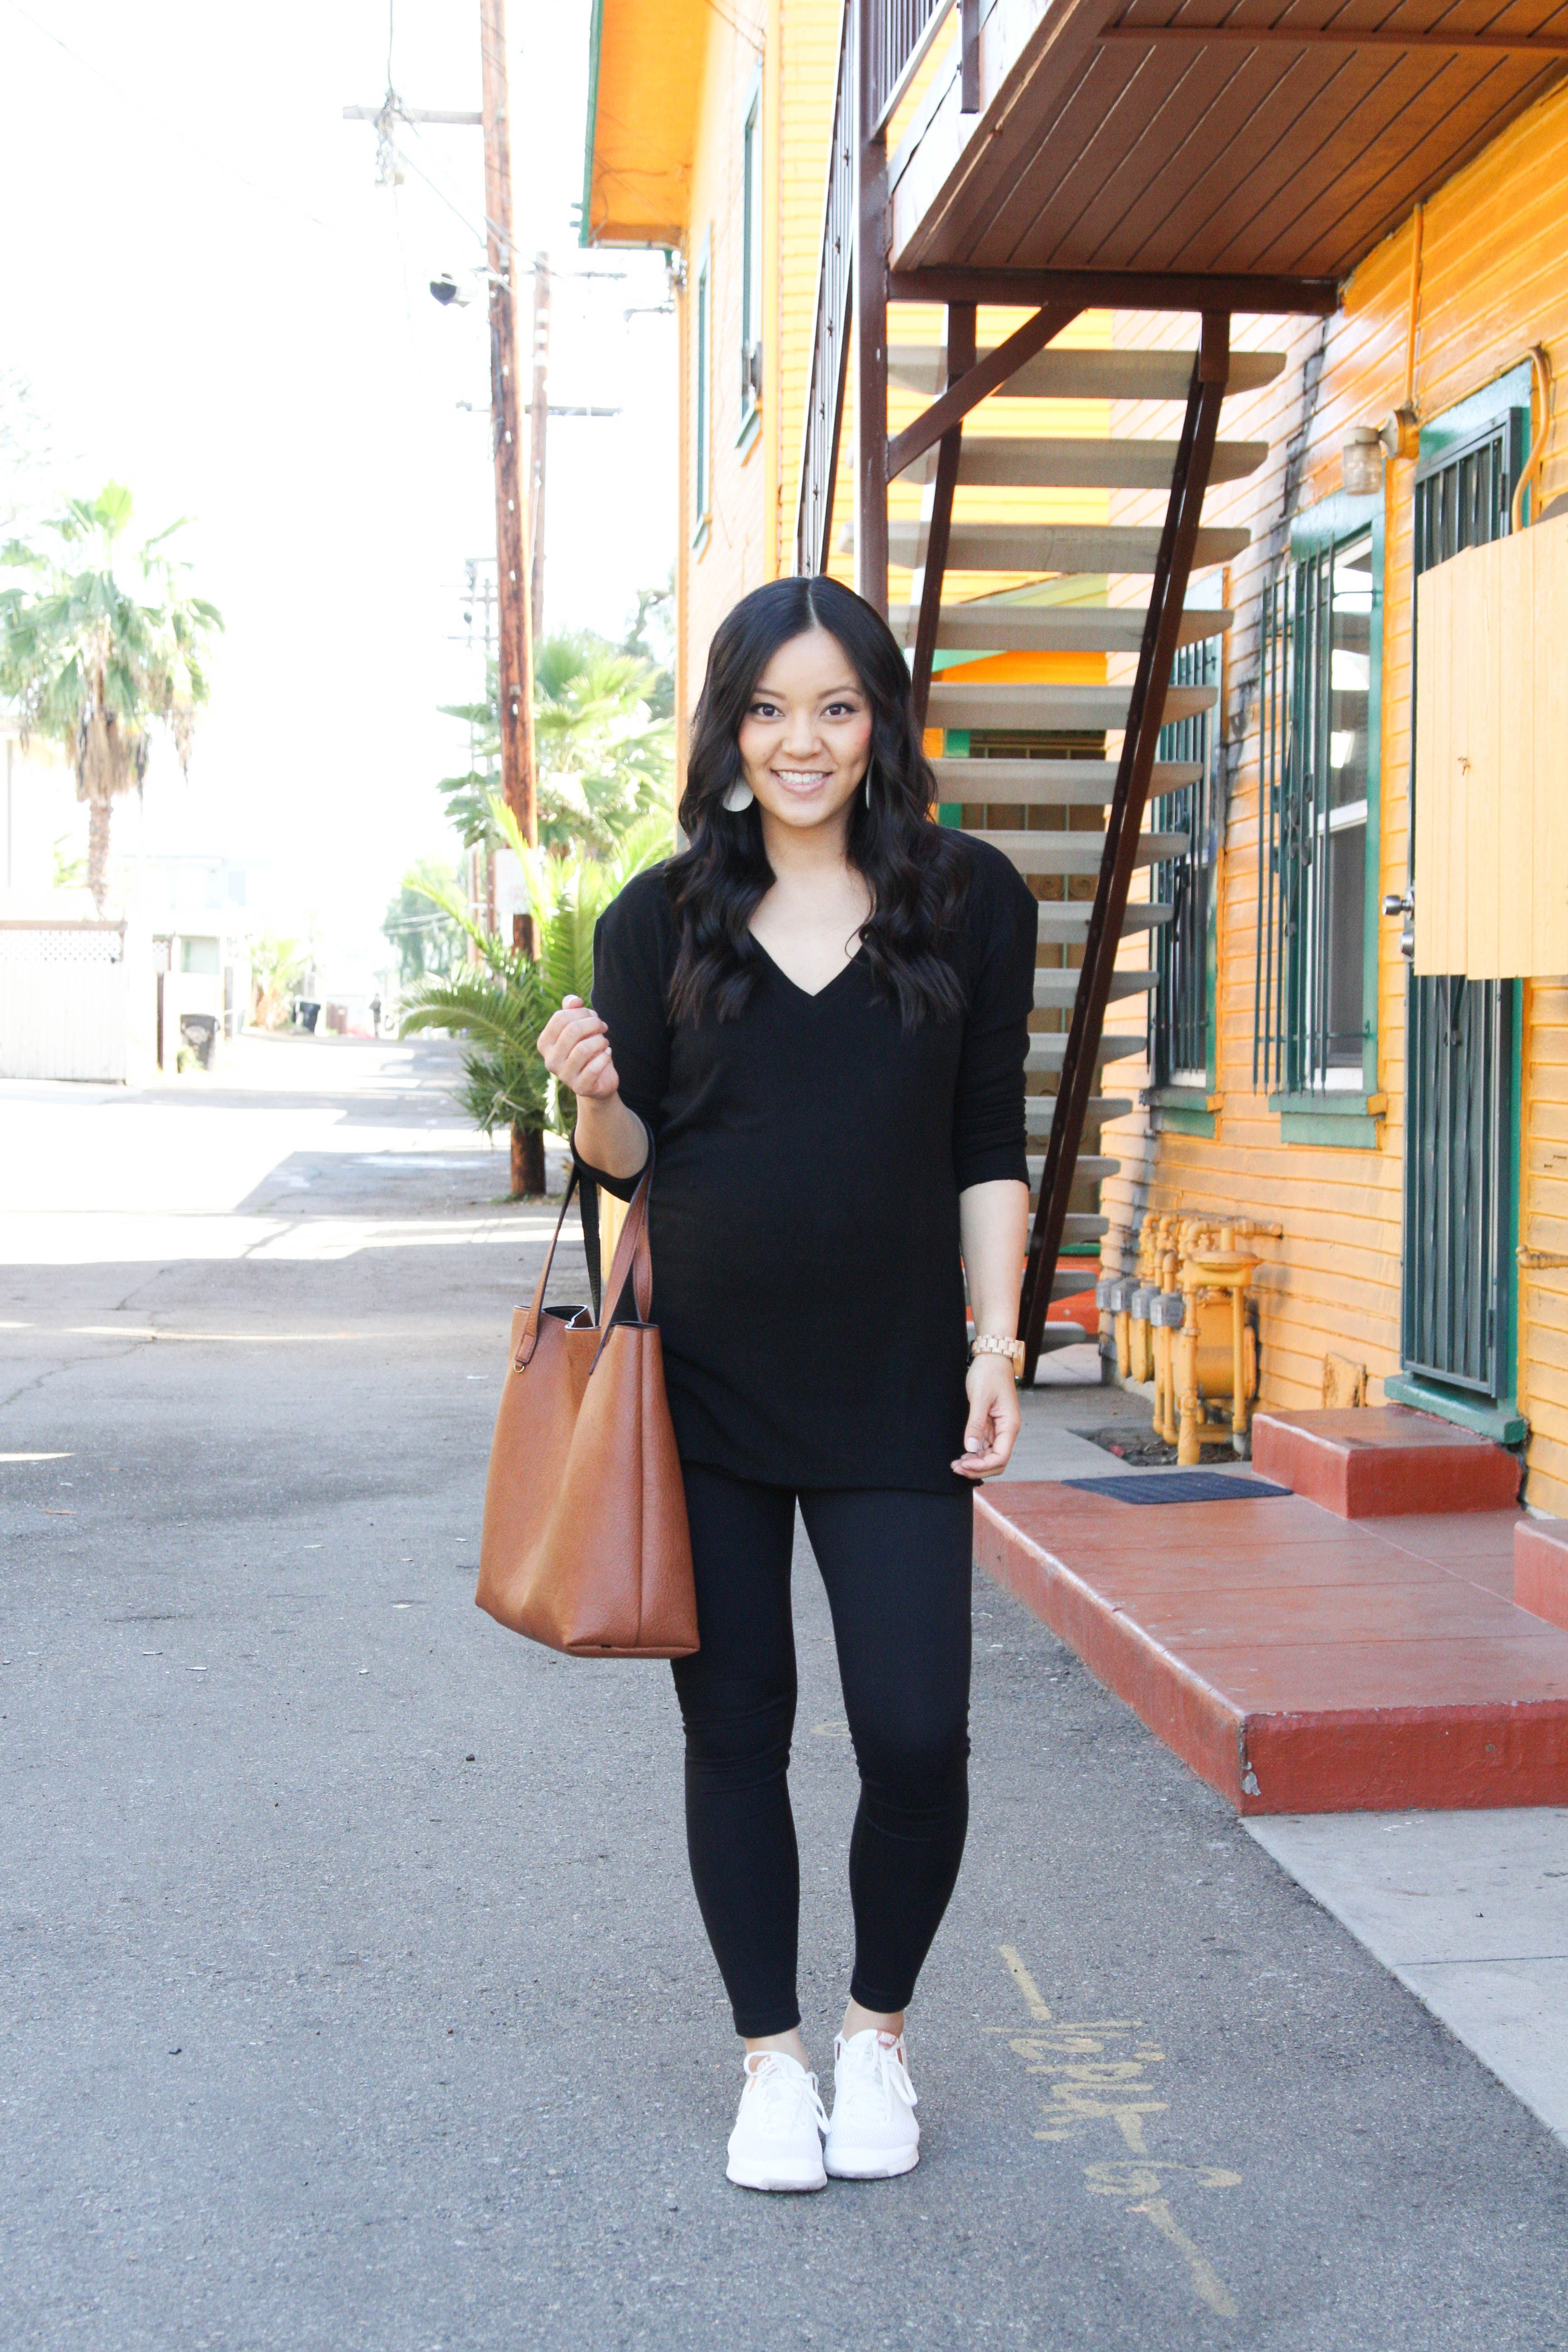 06661f2c9008e Maternity Athleisure: Black Leggings + Black Long Sleeve Top + Cognac Tote  + White Sneakers